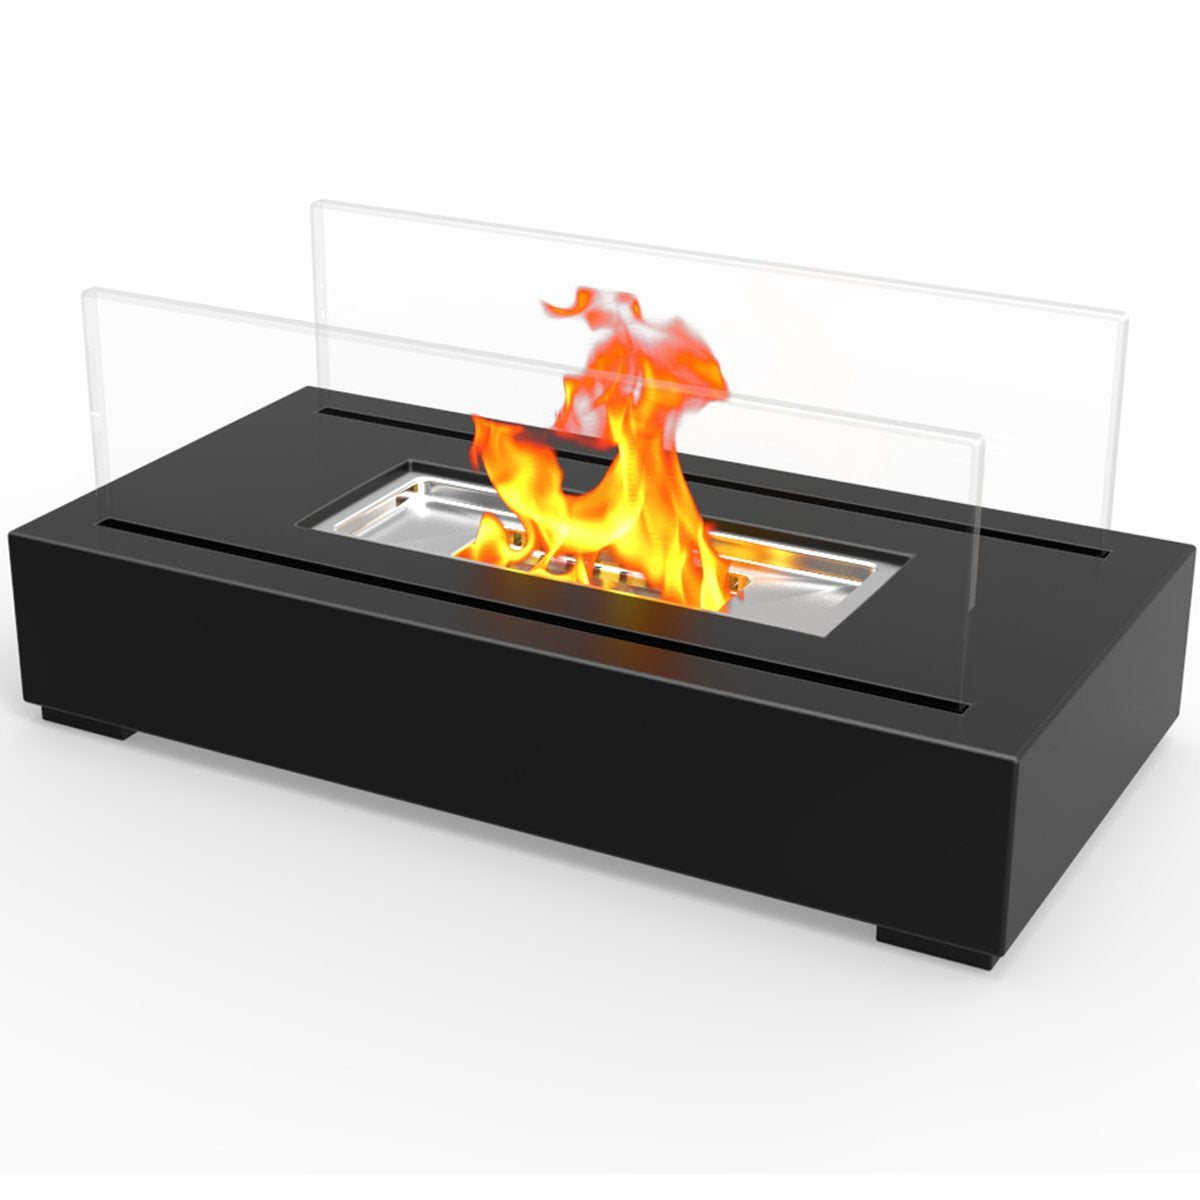 Indoor Outdoor Tabletop Fireplace - oddgifts.com